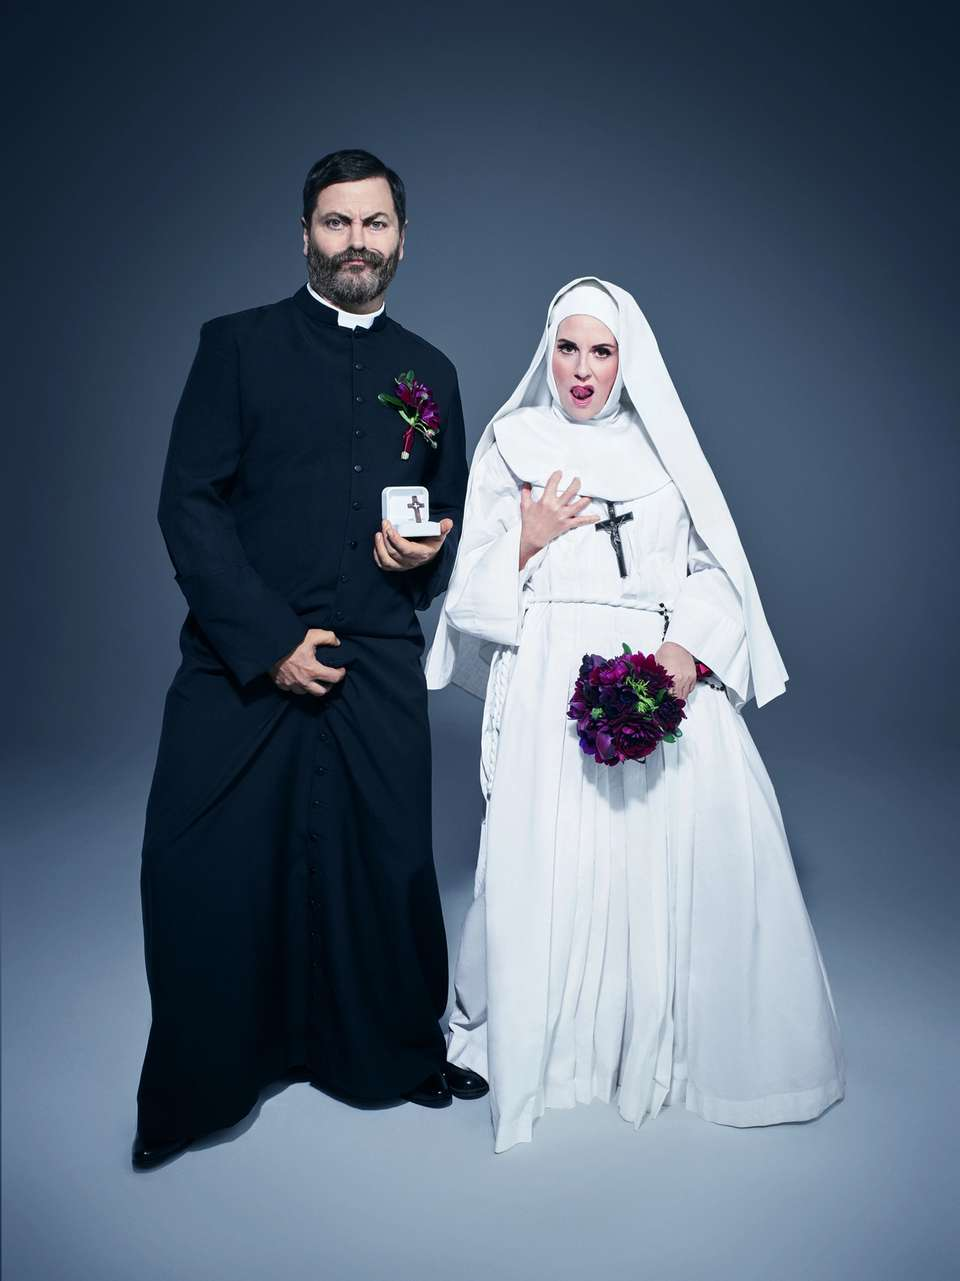 Nick & Megan dressed up as a catholic priest and nun respectively. Both clutching their private parts.